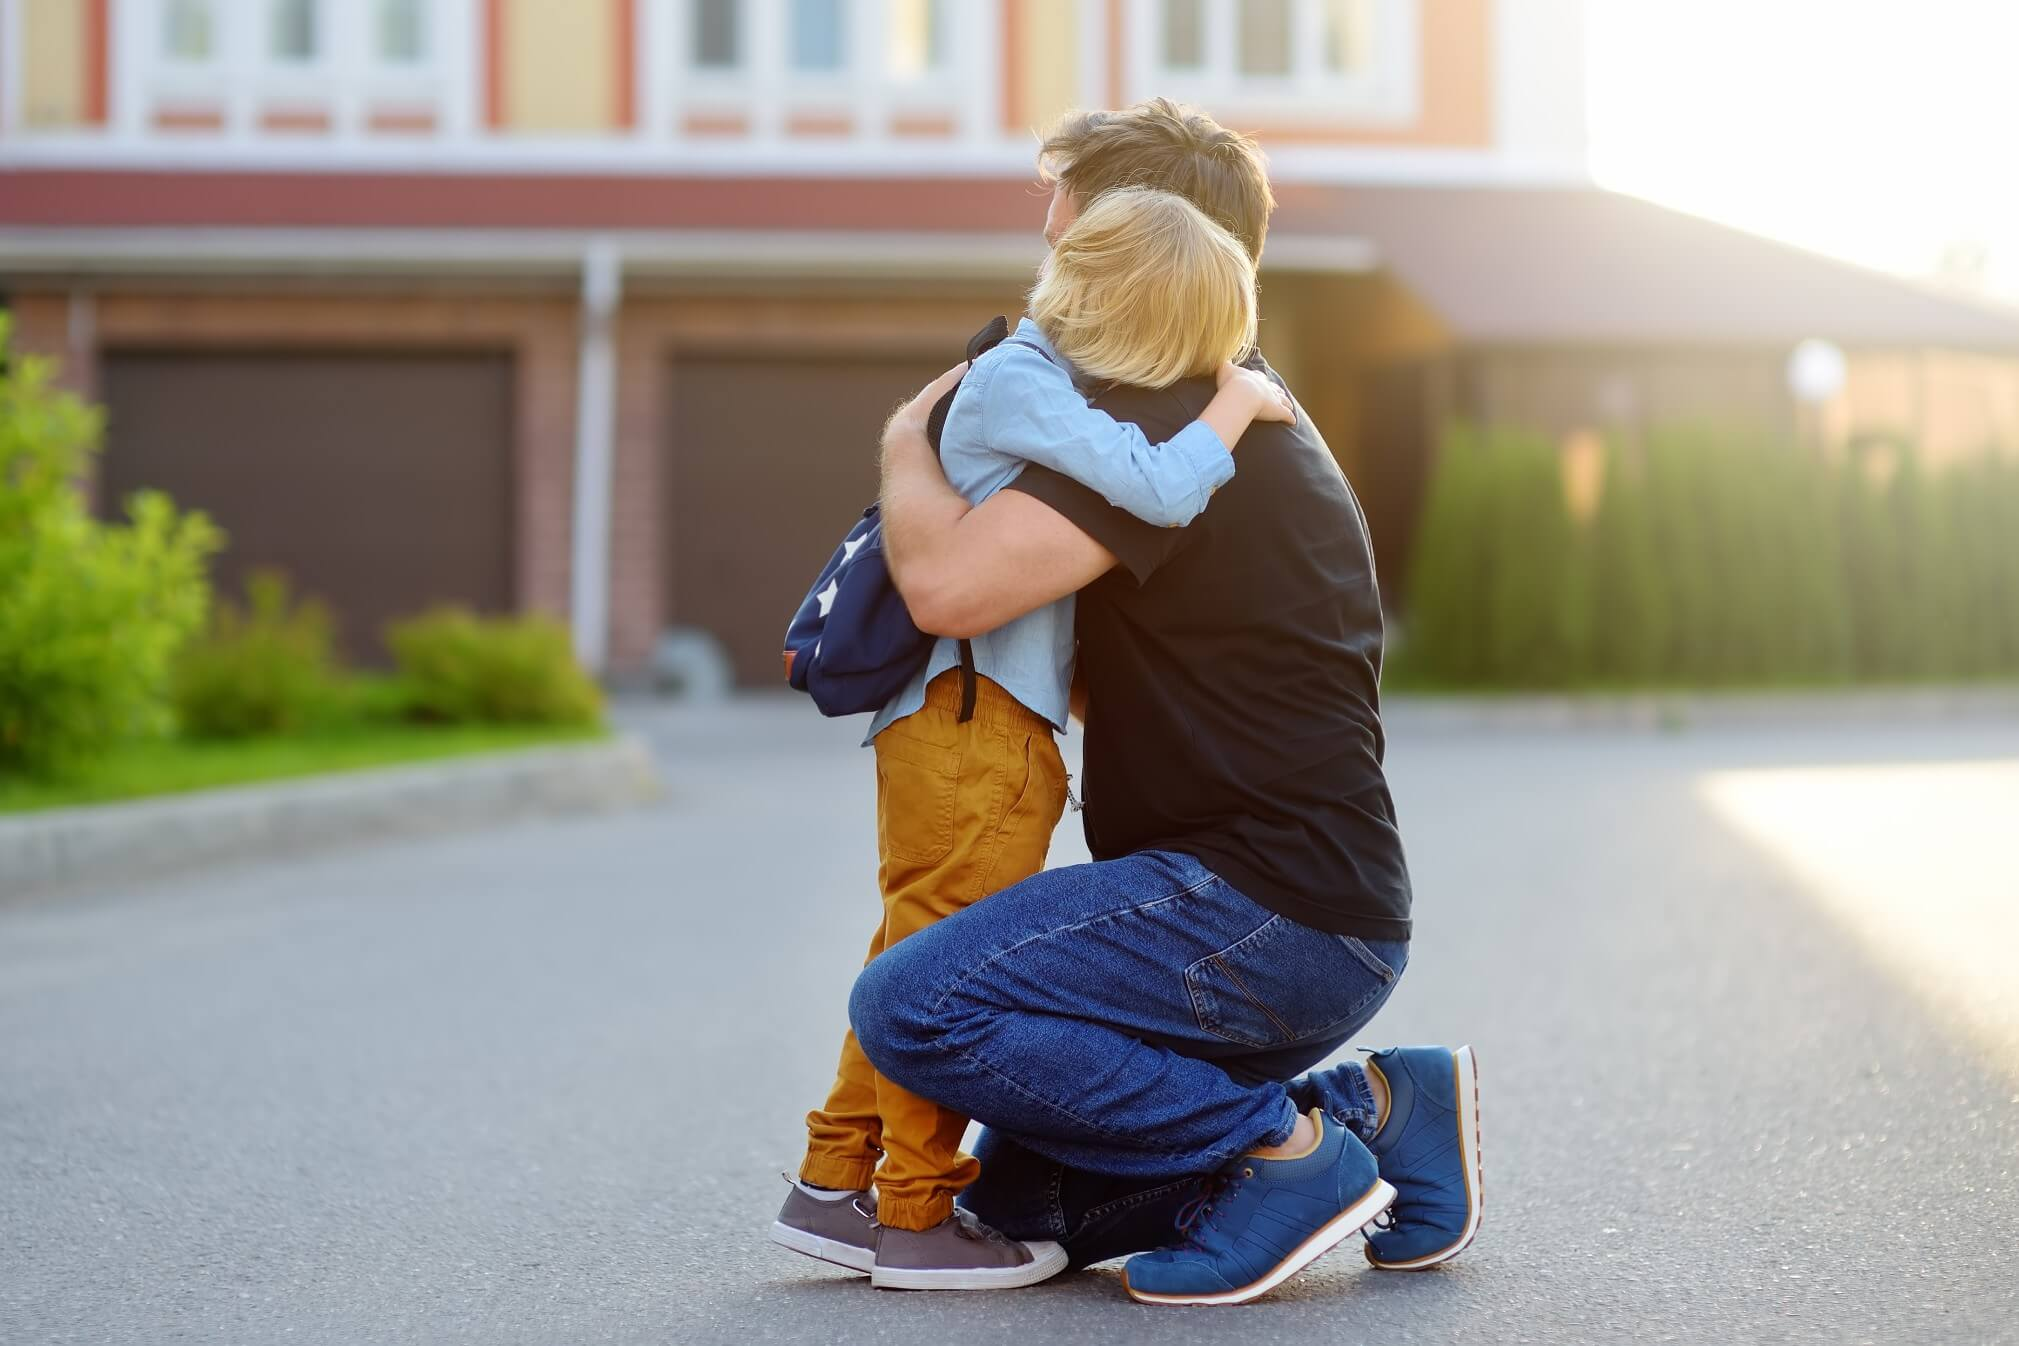 child-boy-bully-parent-comfort-support-school-console-together-father-bored-embrace-hug-consolation_t20_YEOp60 (1)